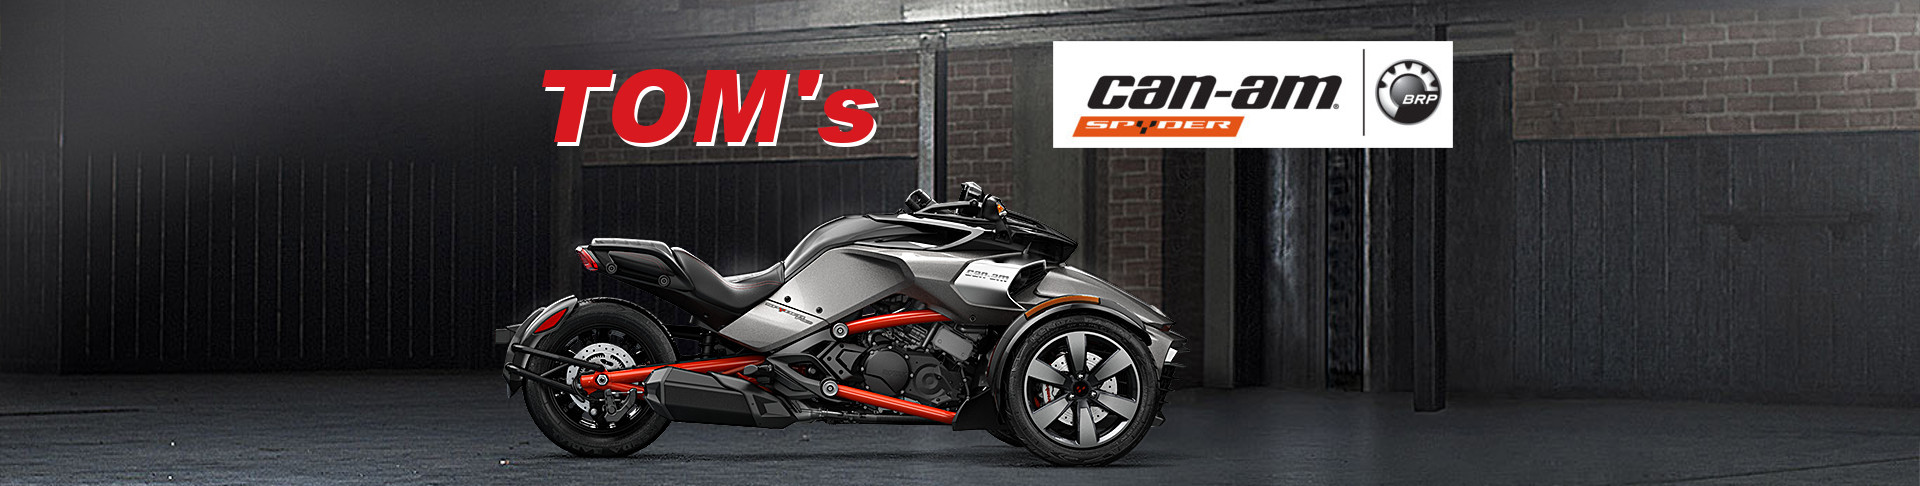 Tom's can-am Spyder